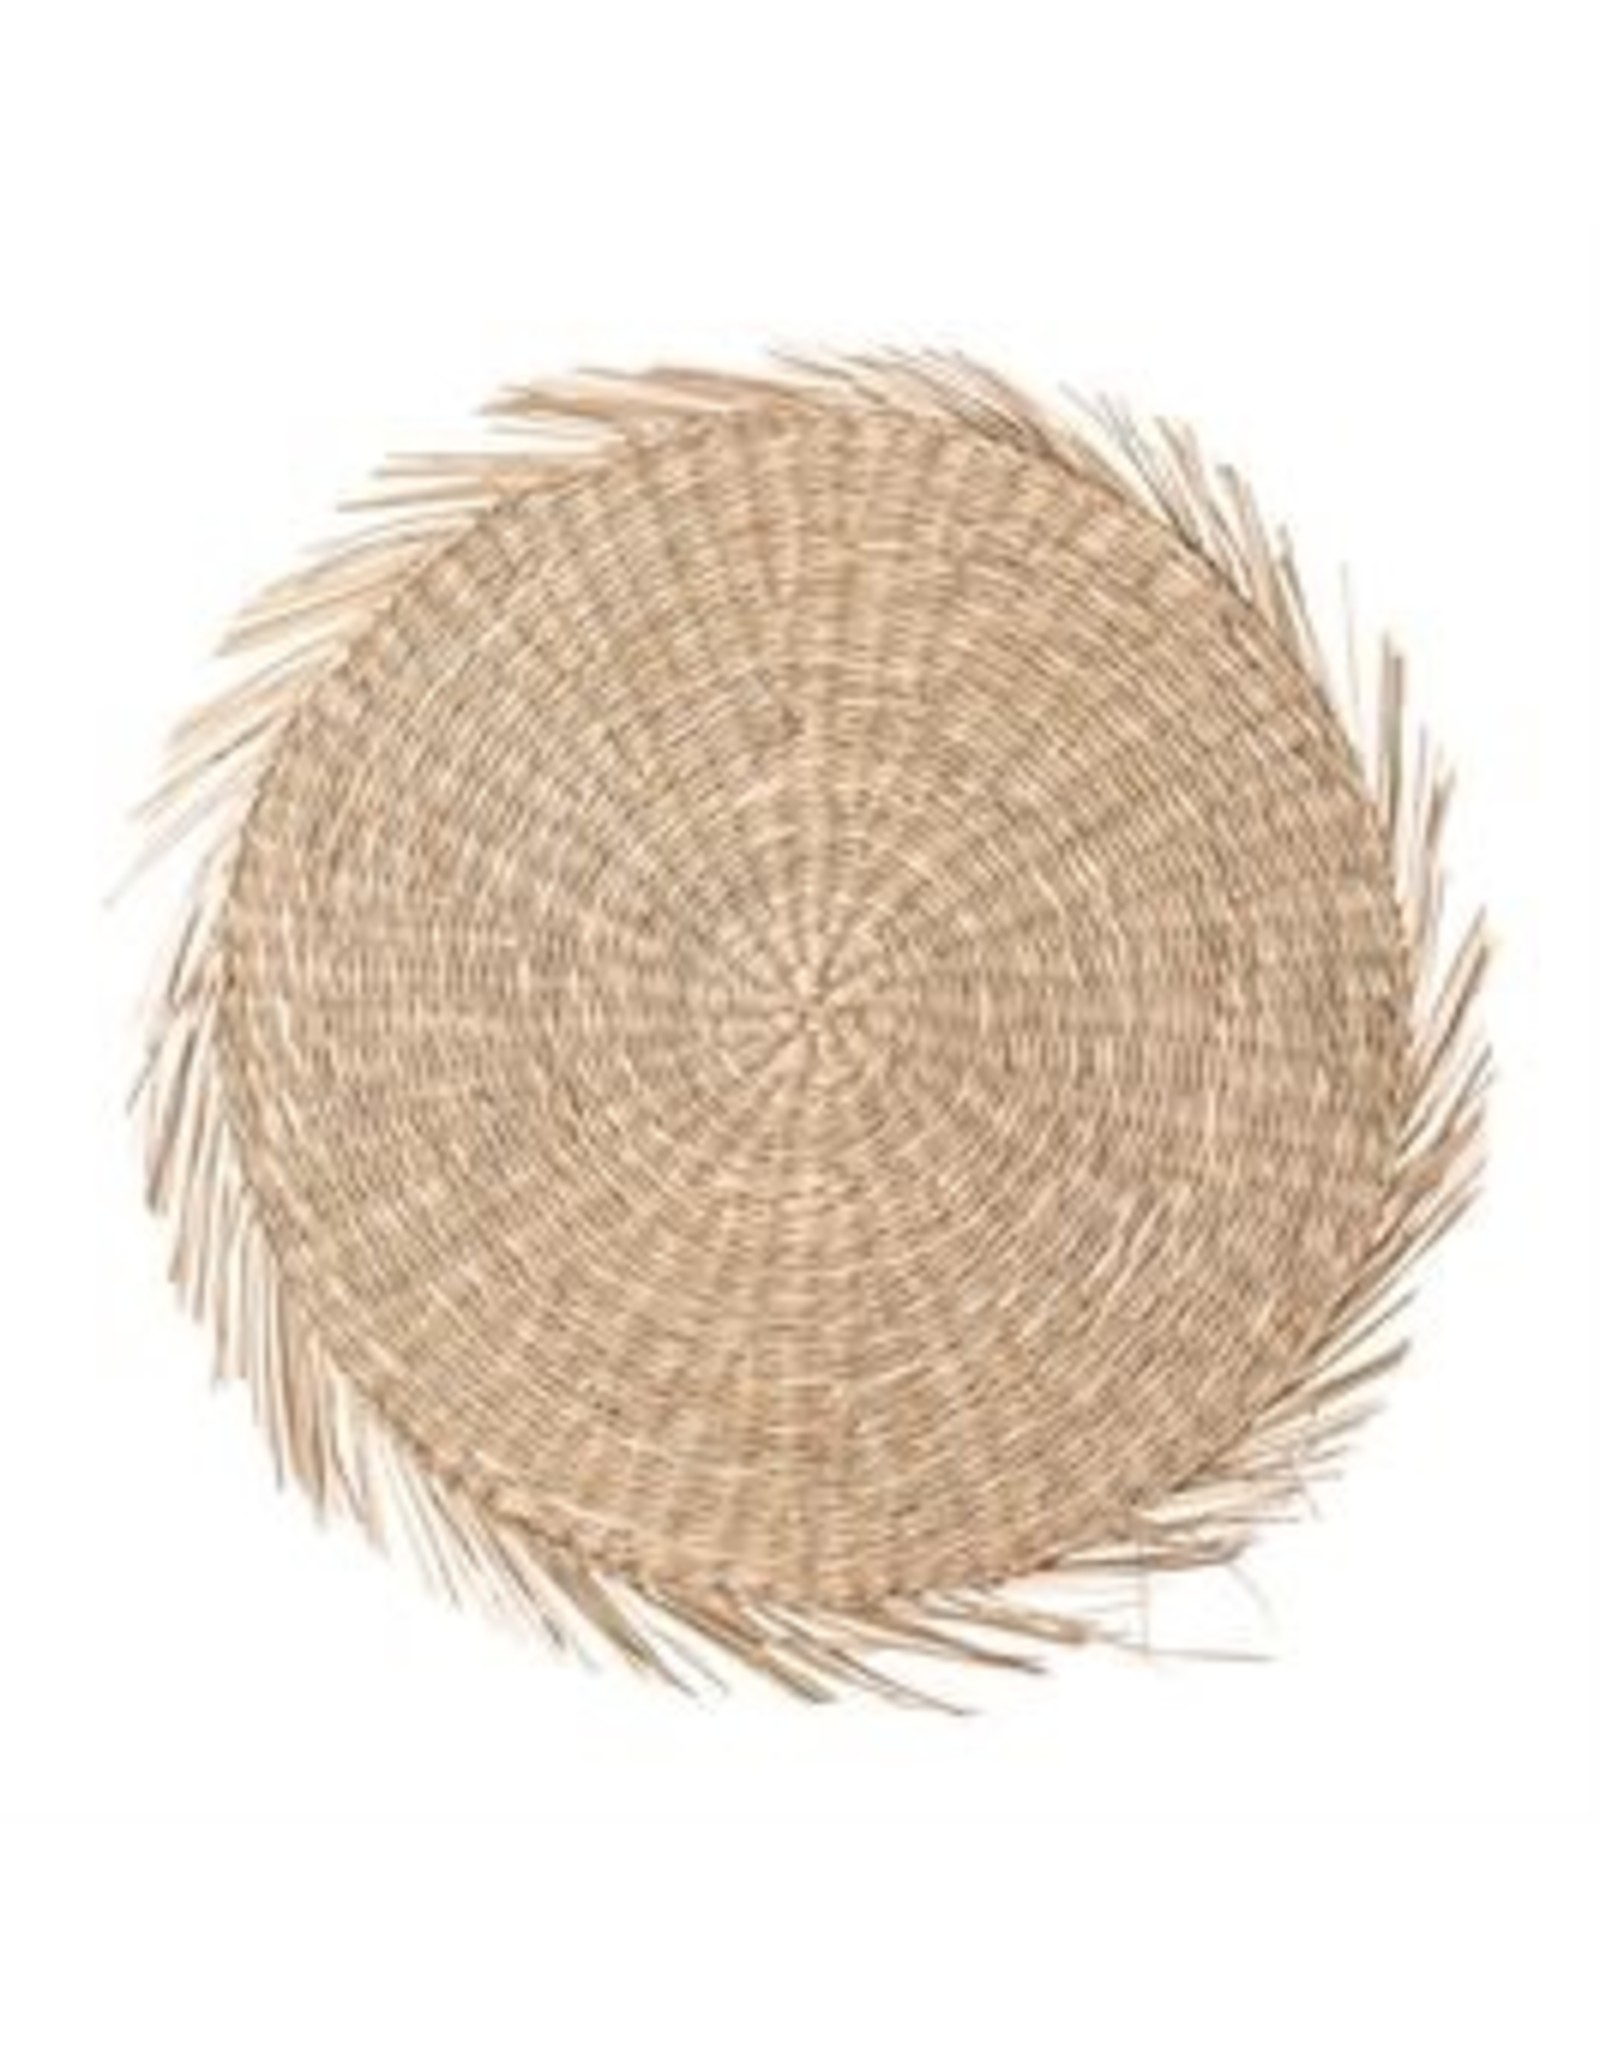 "Bloomingville 15"" Round Seagrass Placemat"